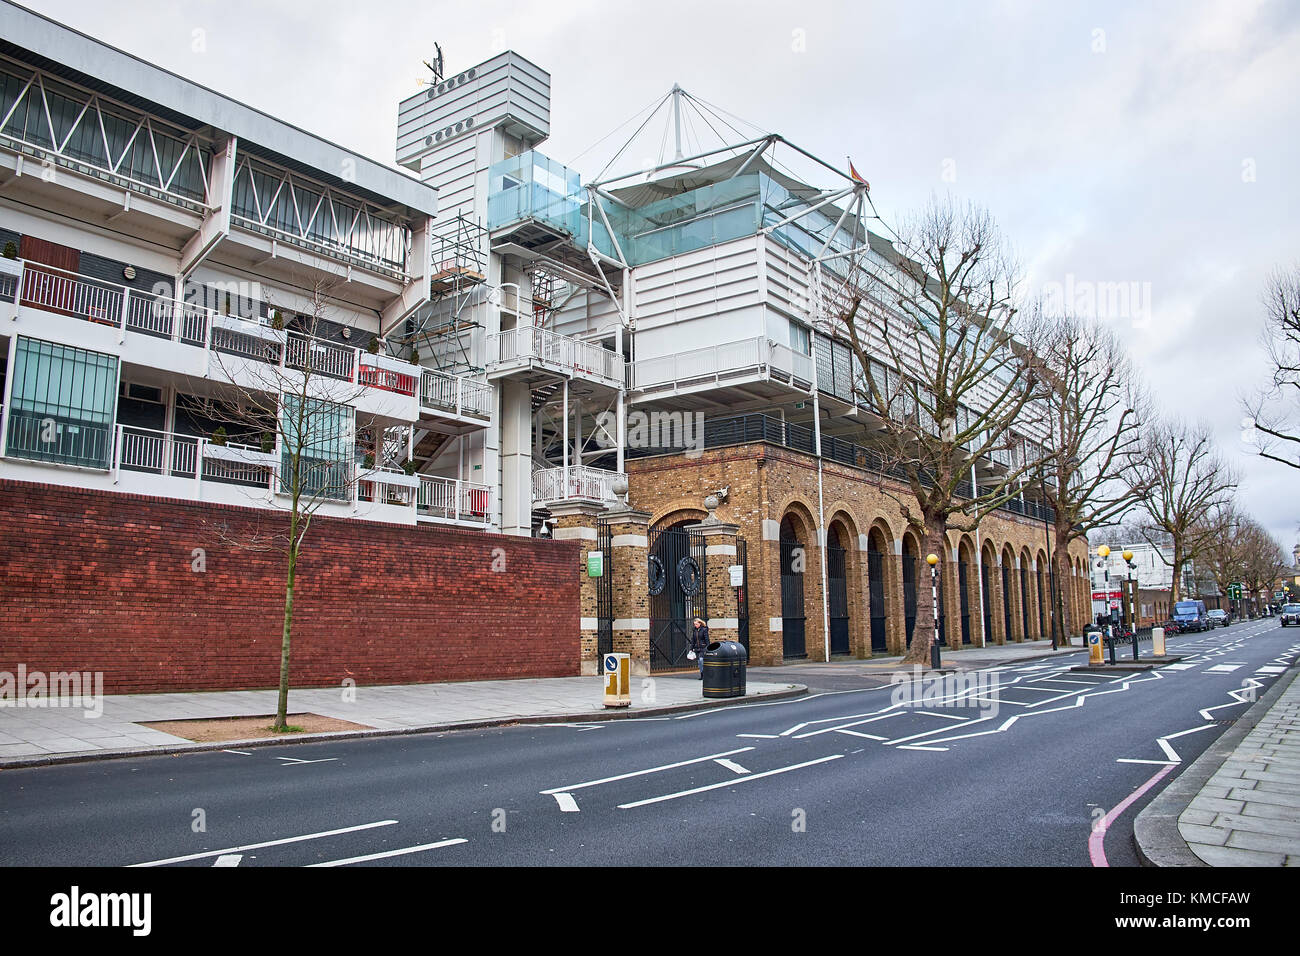 LONDON CITY - DECEMBER 25, 2016: The facade of Lord's Cricket Ground with an empty street on Christmas Day - Stock Image